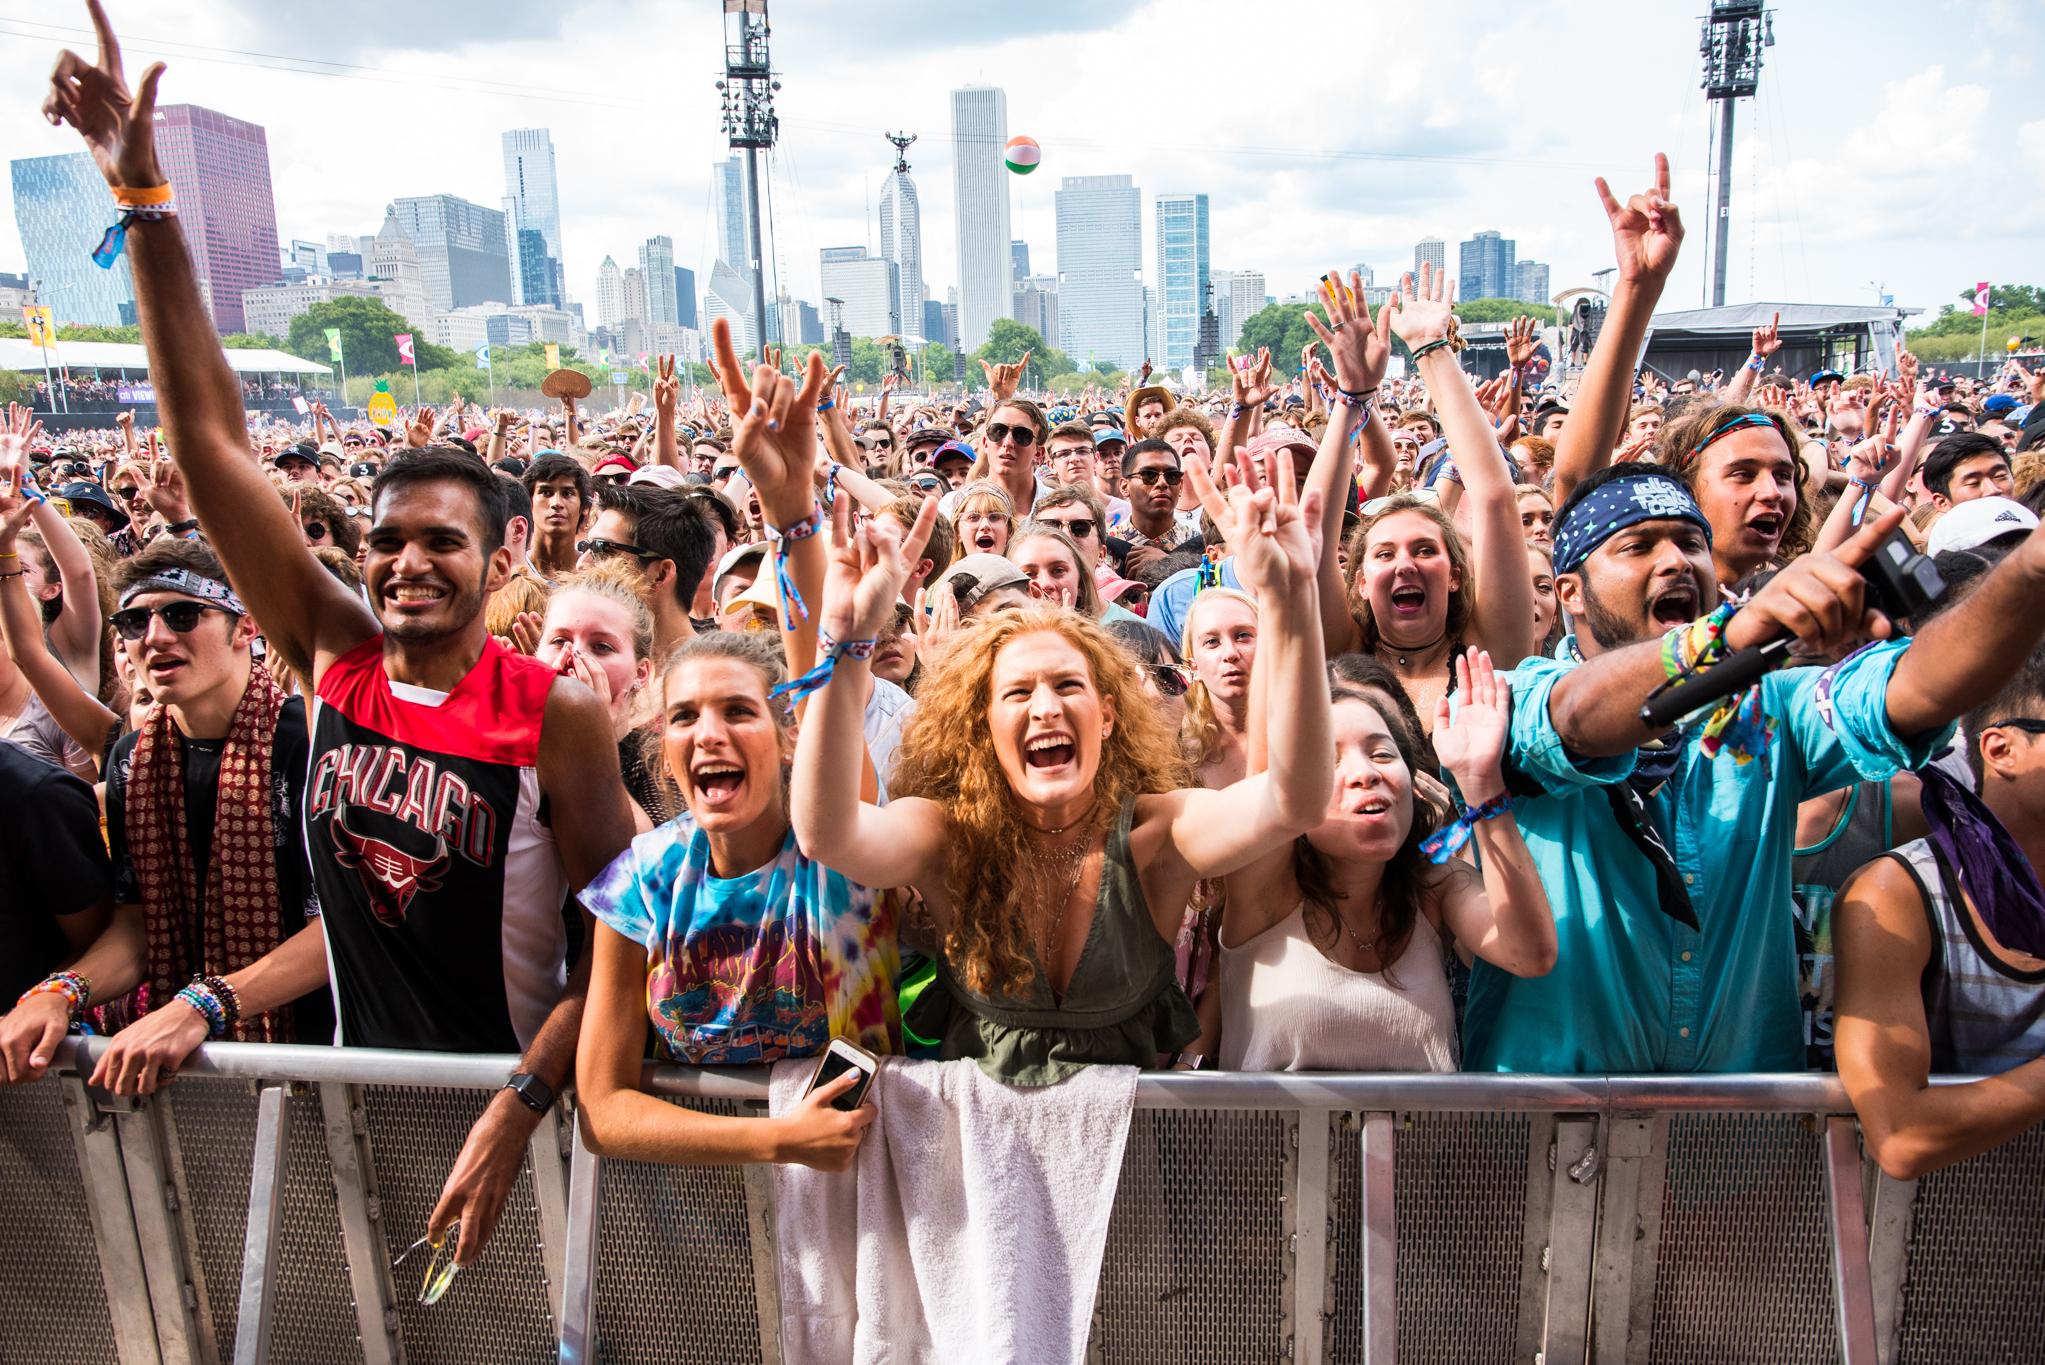 Chicago's best summer music festivals